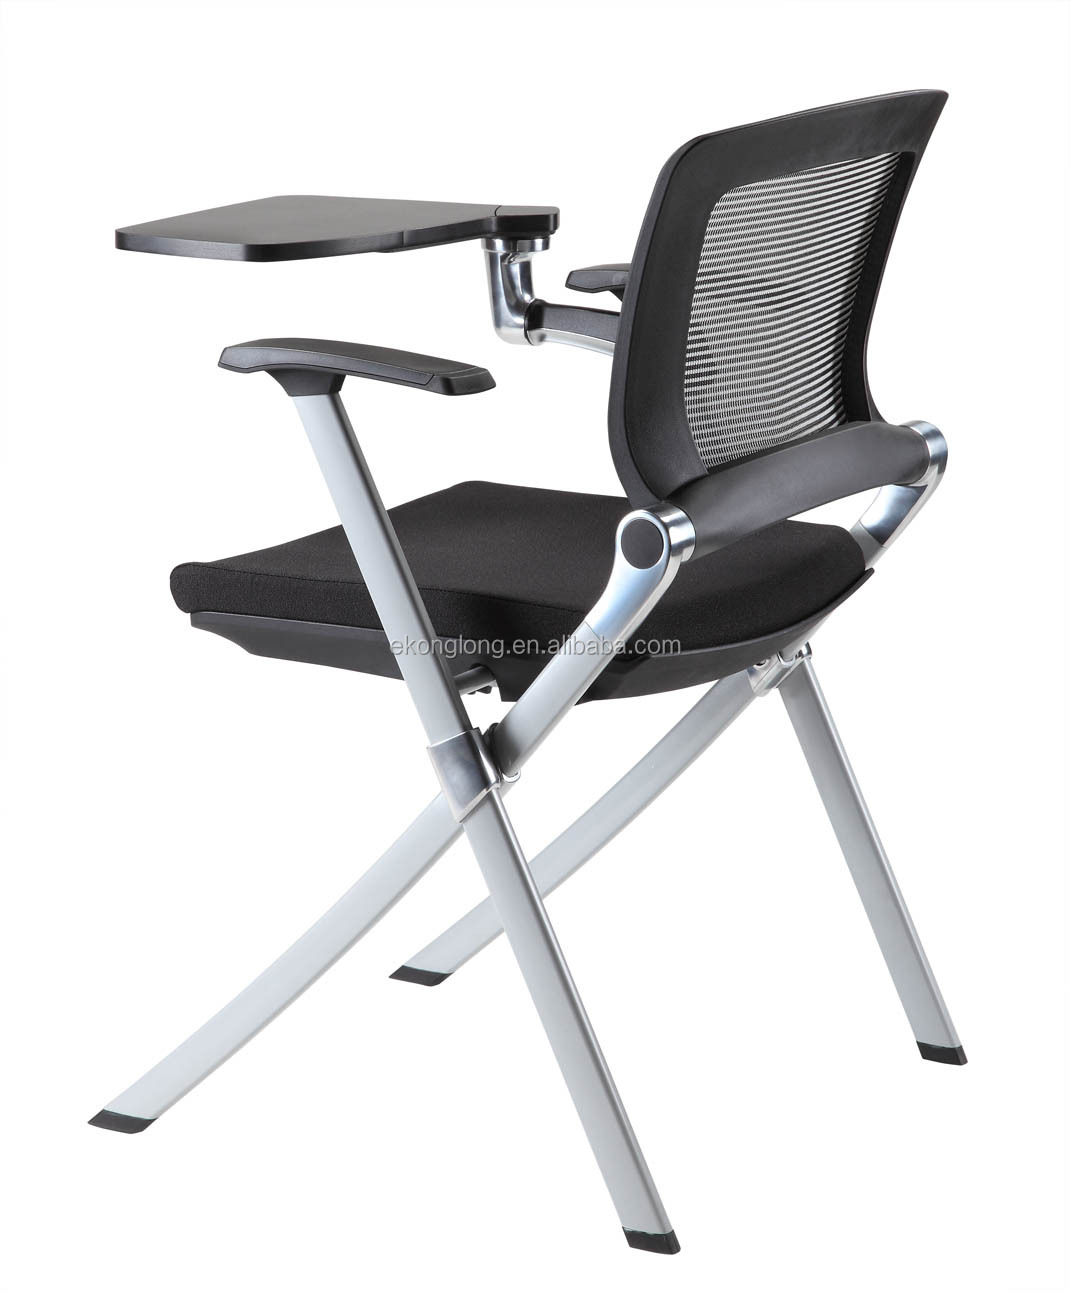 Superb 2014 Training Room Chairs With Writing Pad,Folding Chair With Writing Board    Buy Training Room Chairs With Writing Pad,Reading Room Folding  Chair,Student ...